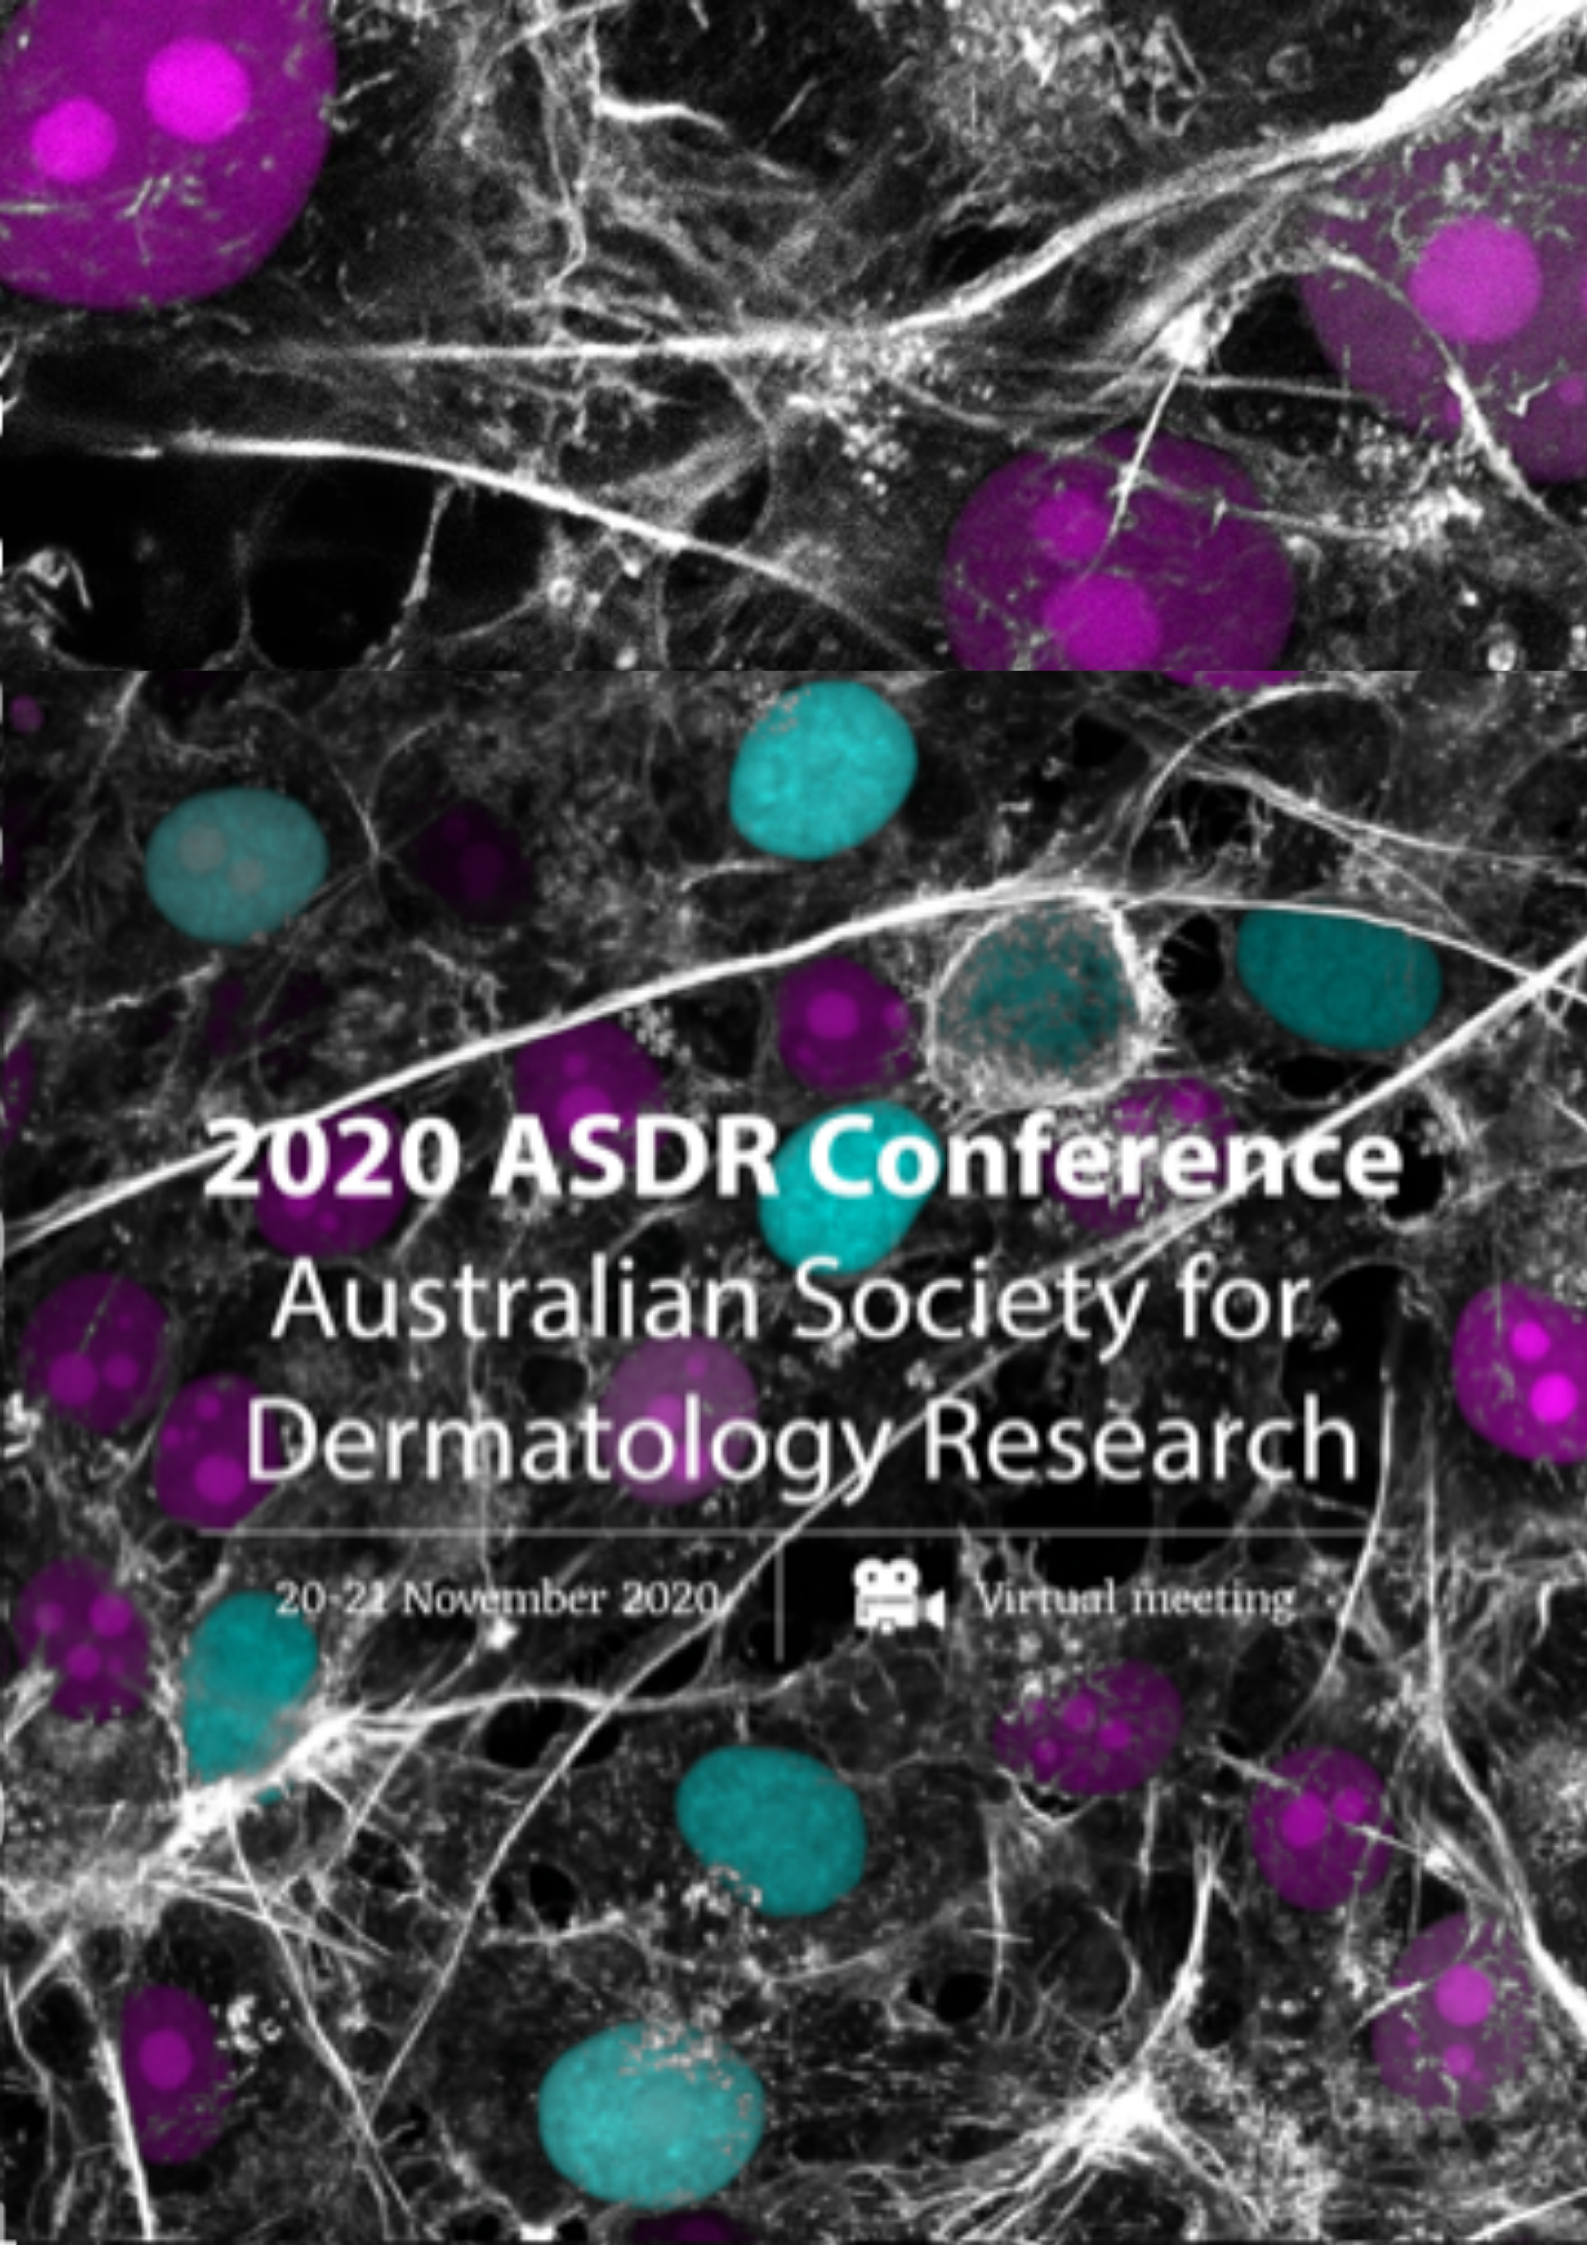 ASDR Conference 2020